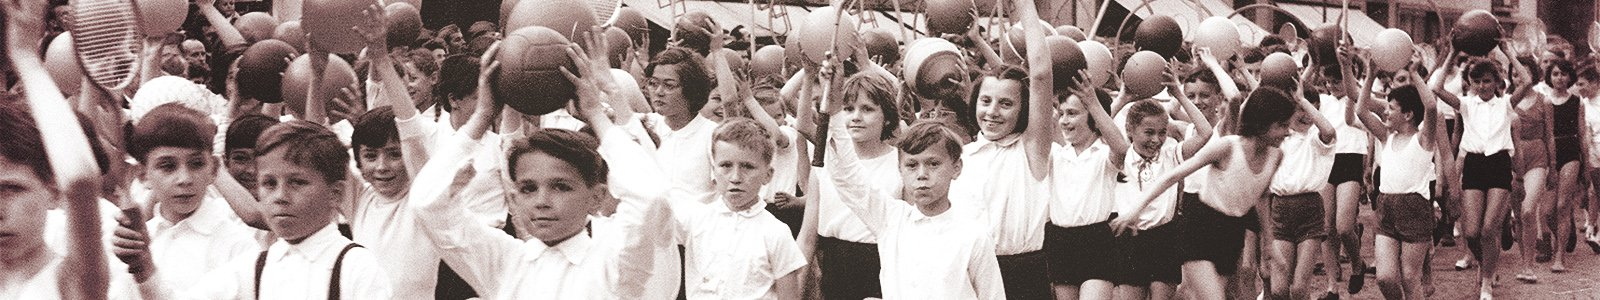 1961 Youth Day in Maribor - Wikimedia Commons/Dragiša Modrinjak